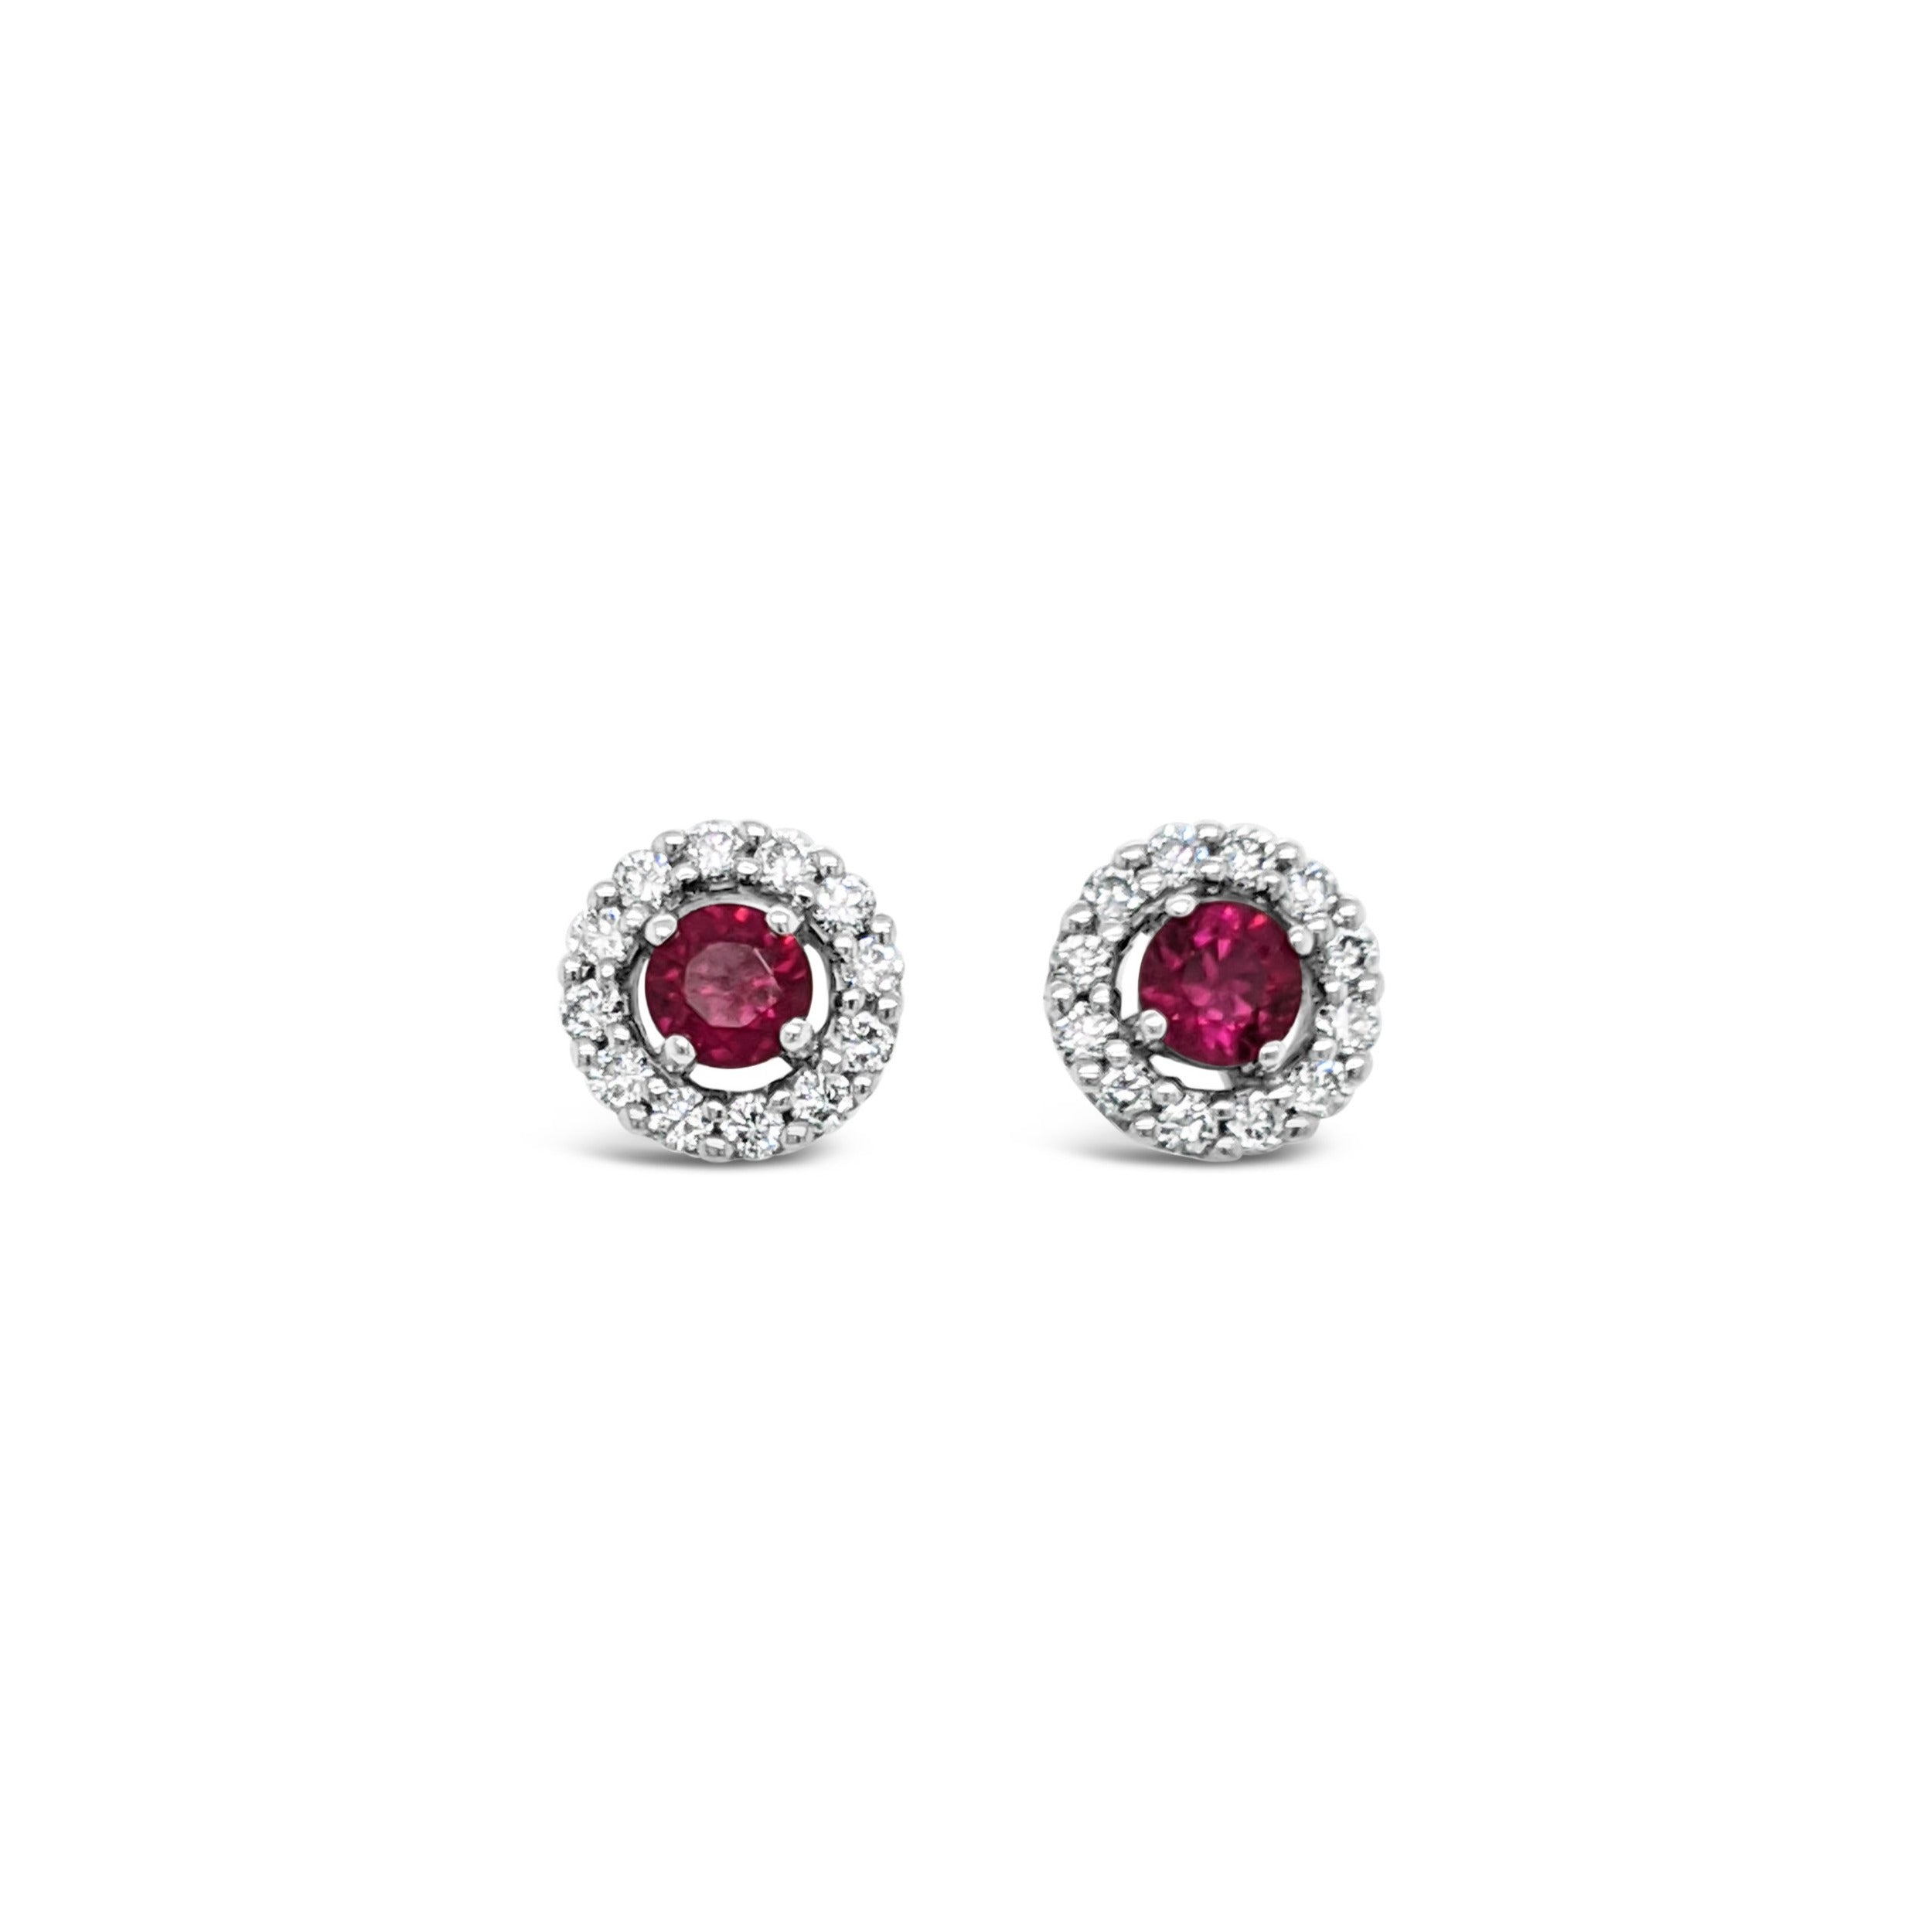 18ct White gold ruby studs with halo of diamonds